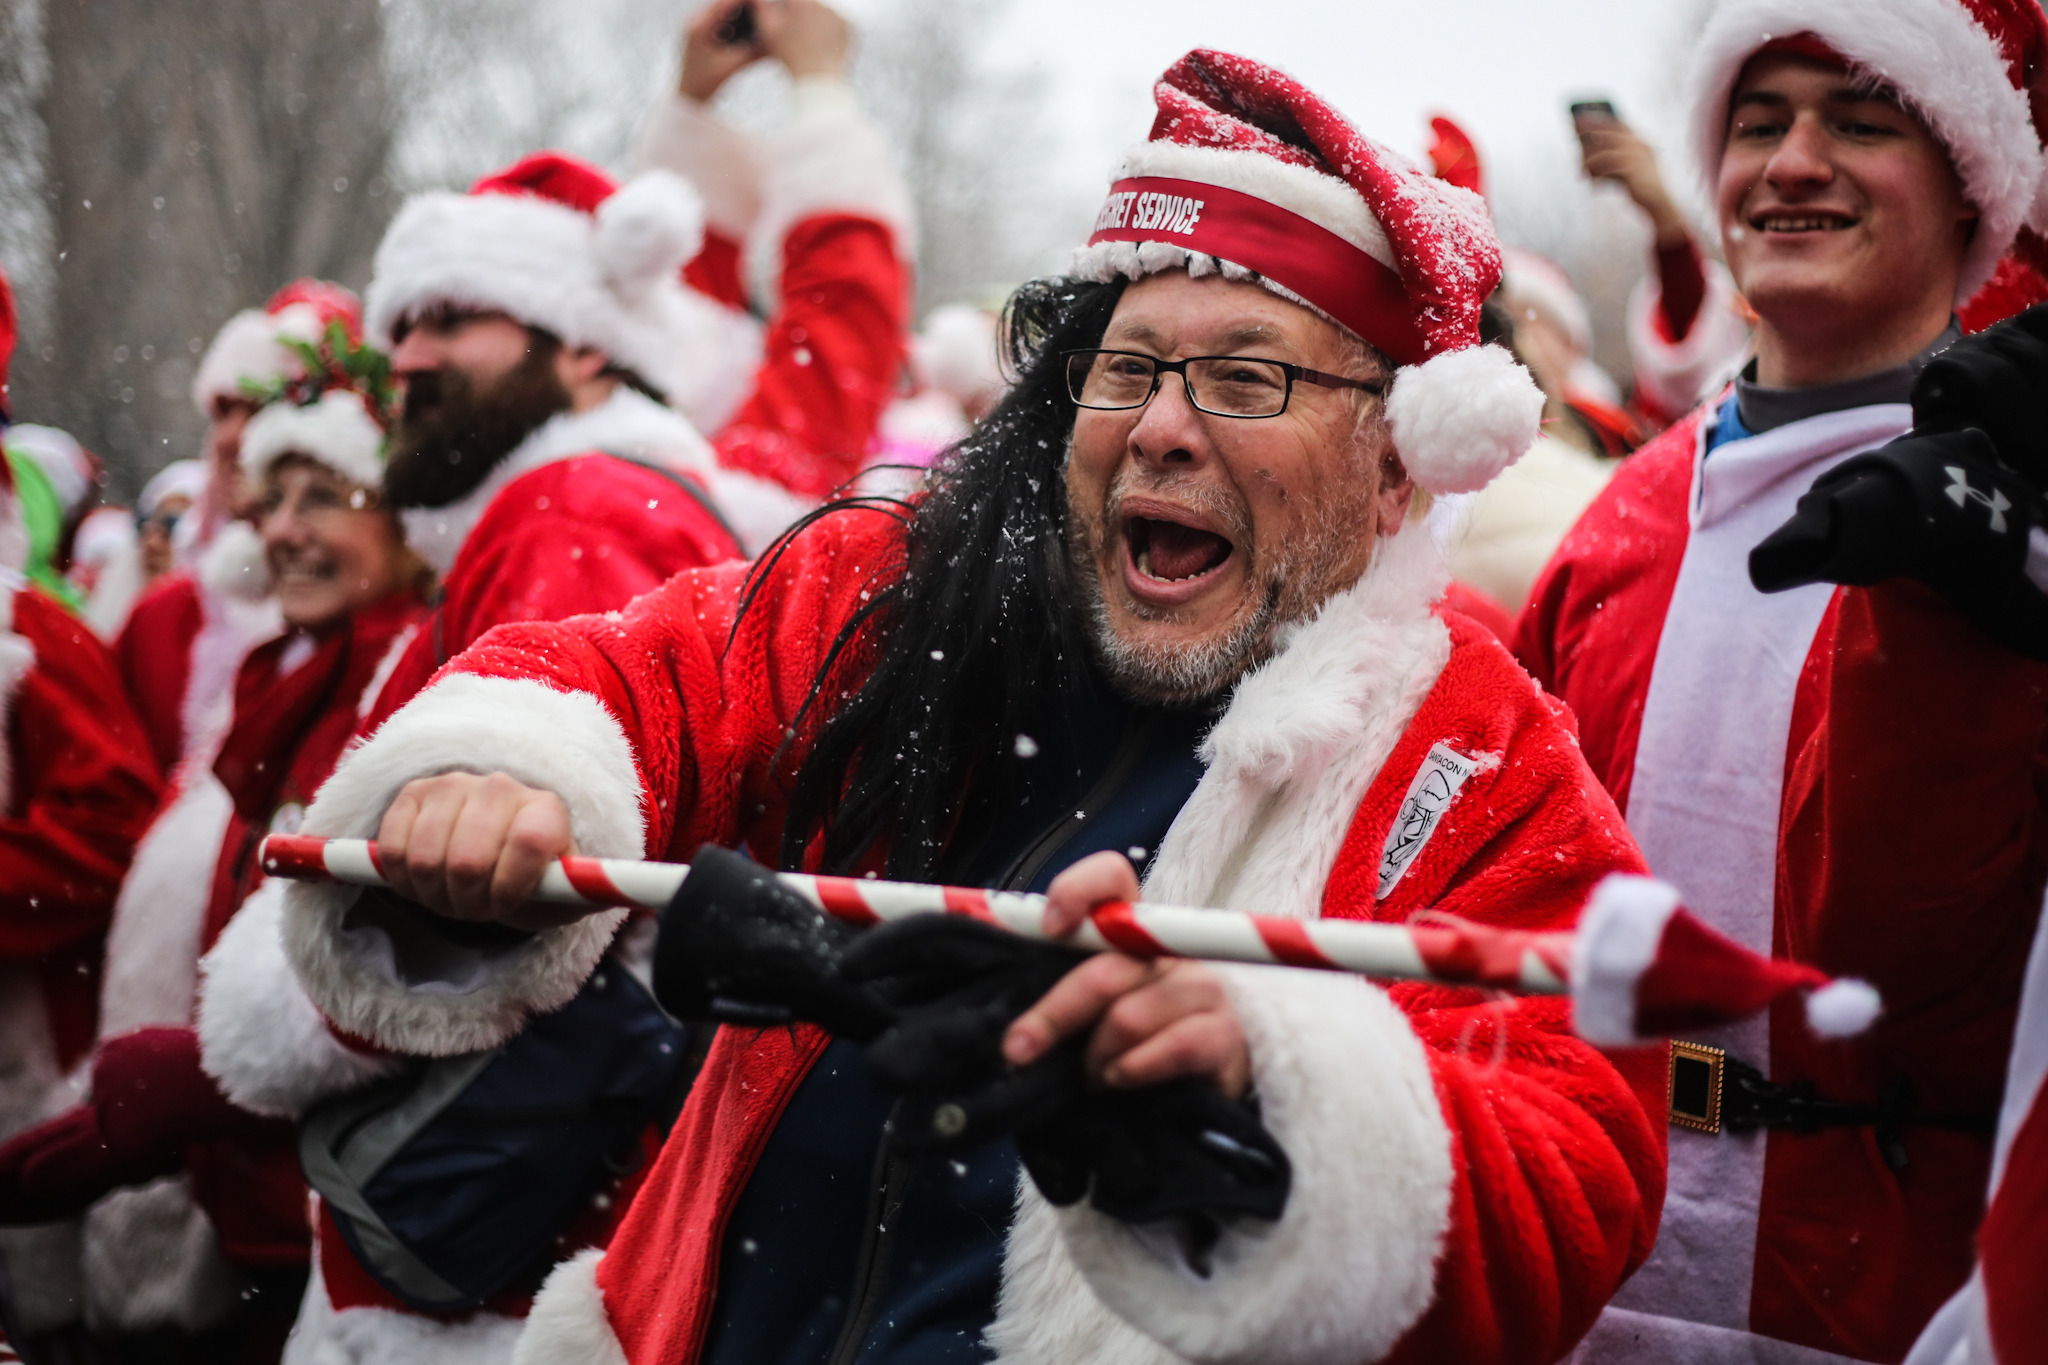 East Village and LES join in on the SantaCon ban